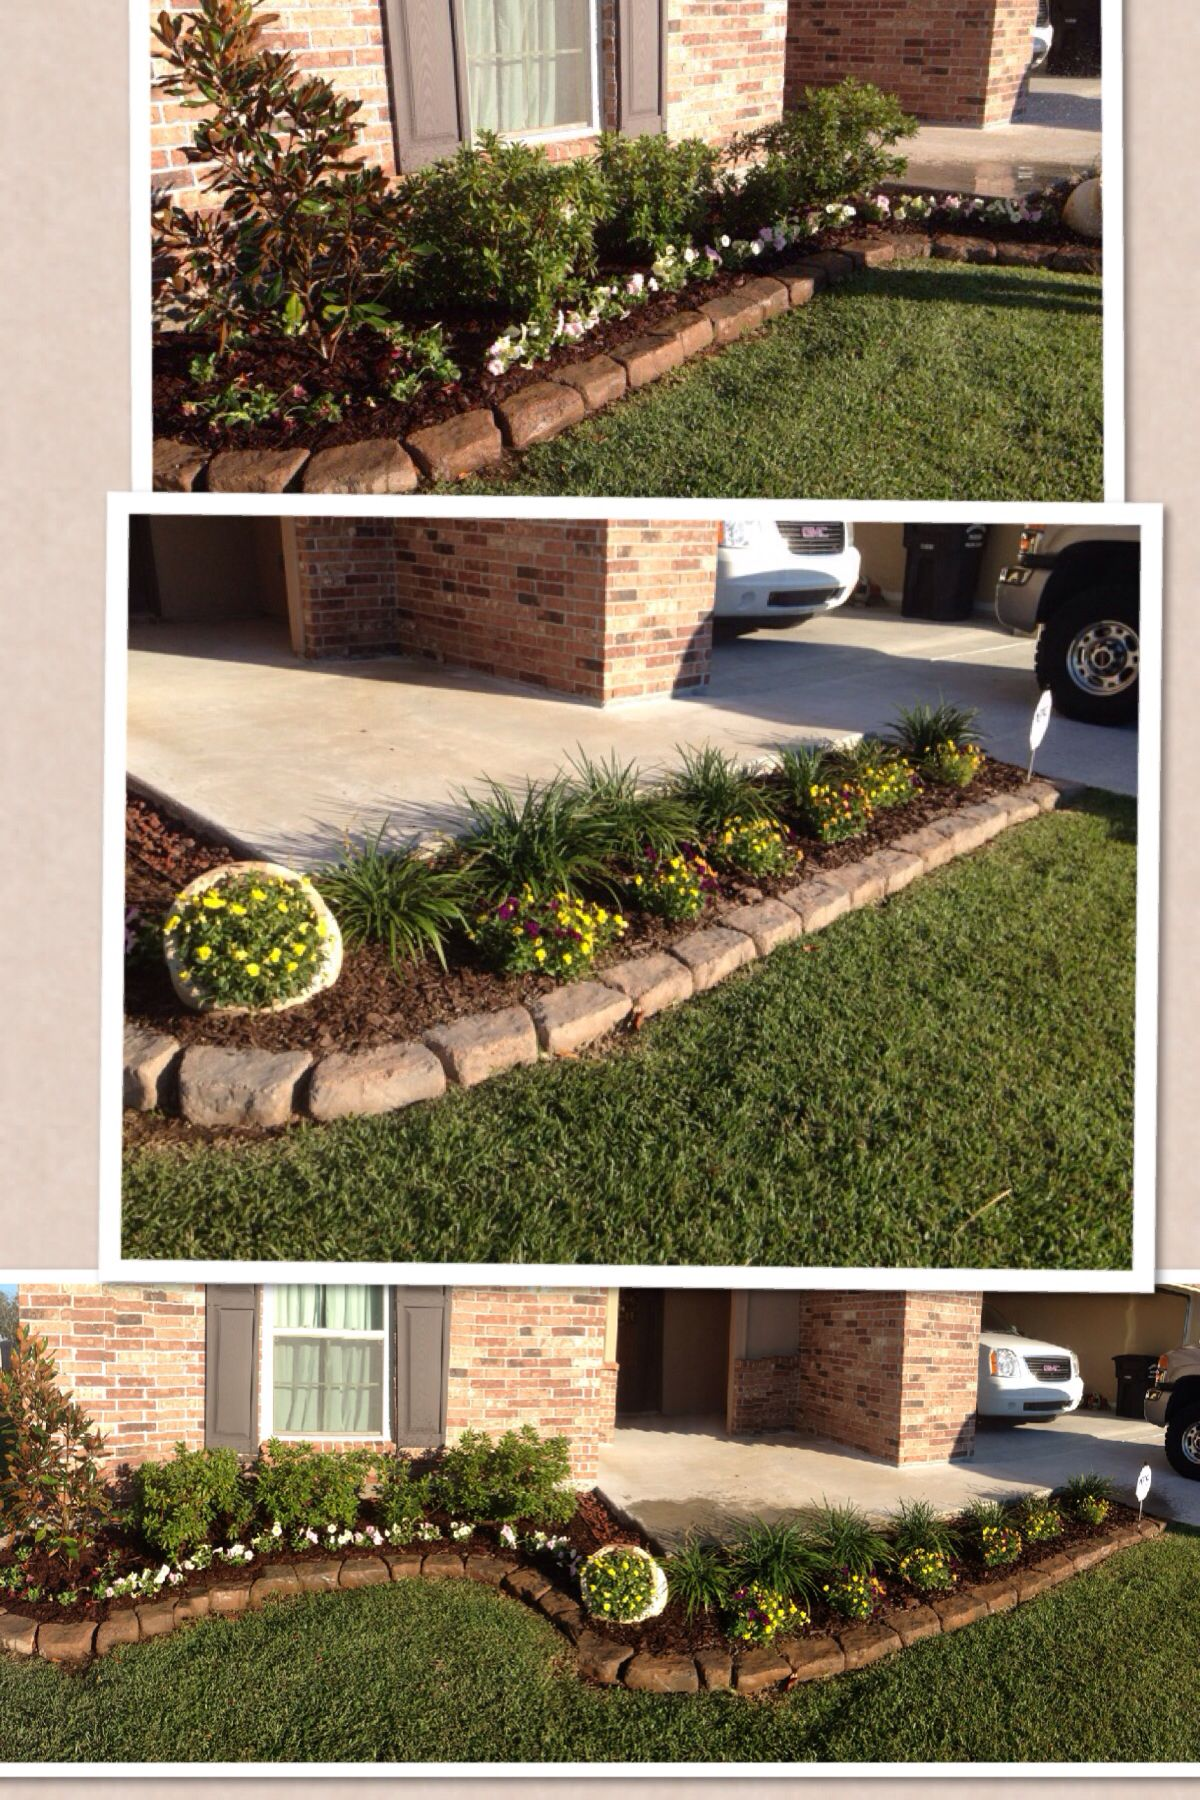 Simple front flower bed design - Flower Gardening | Outdoors ...